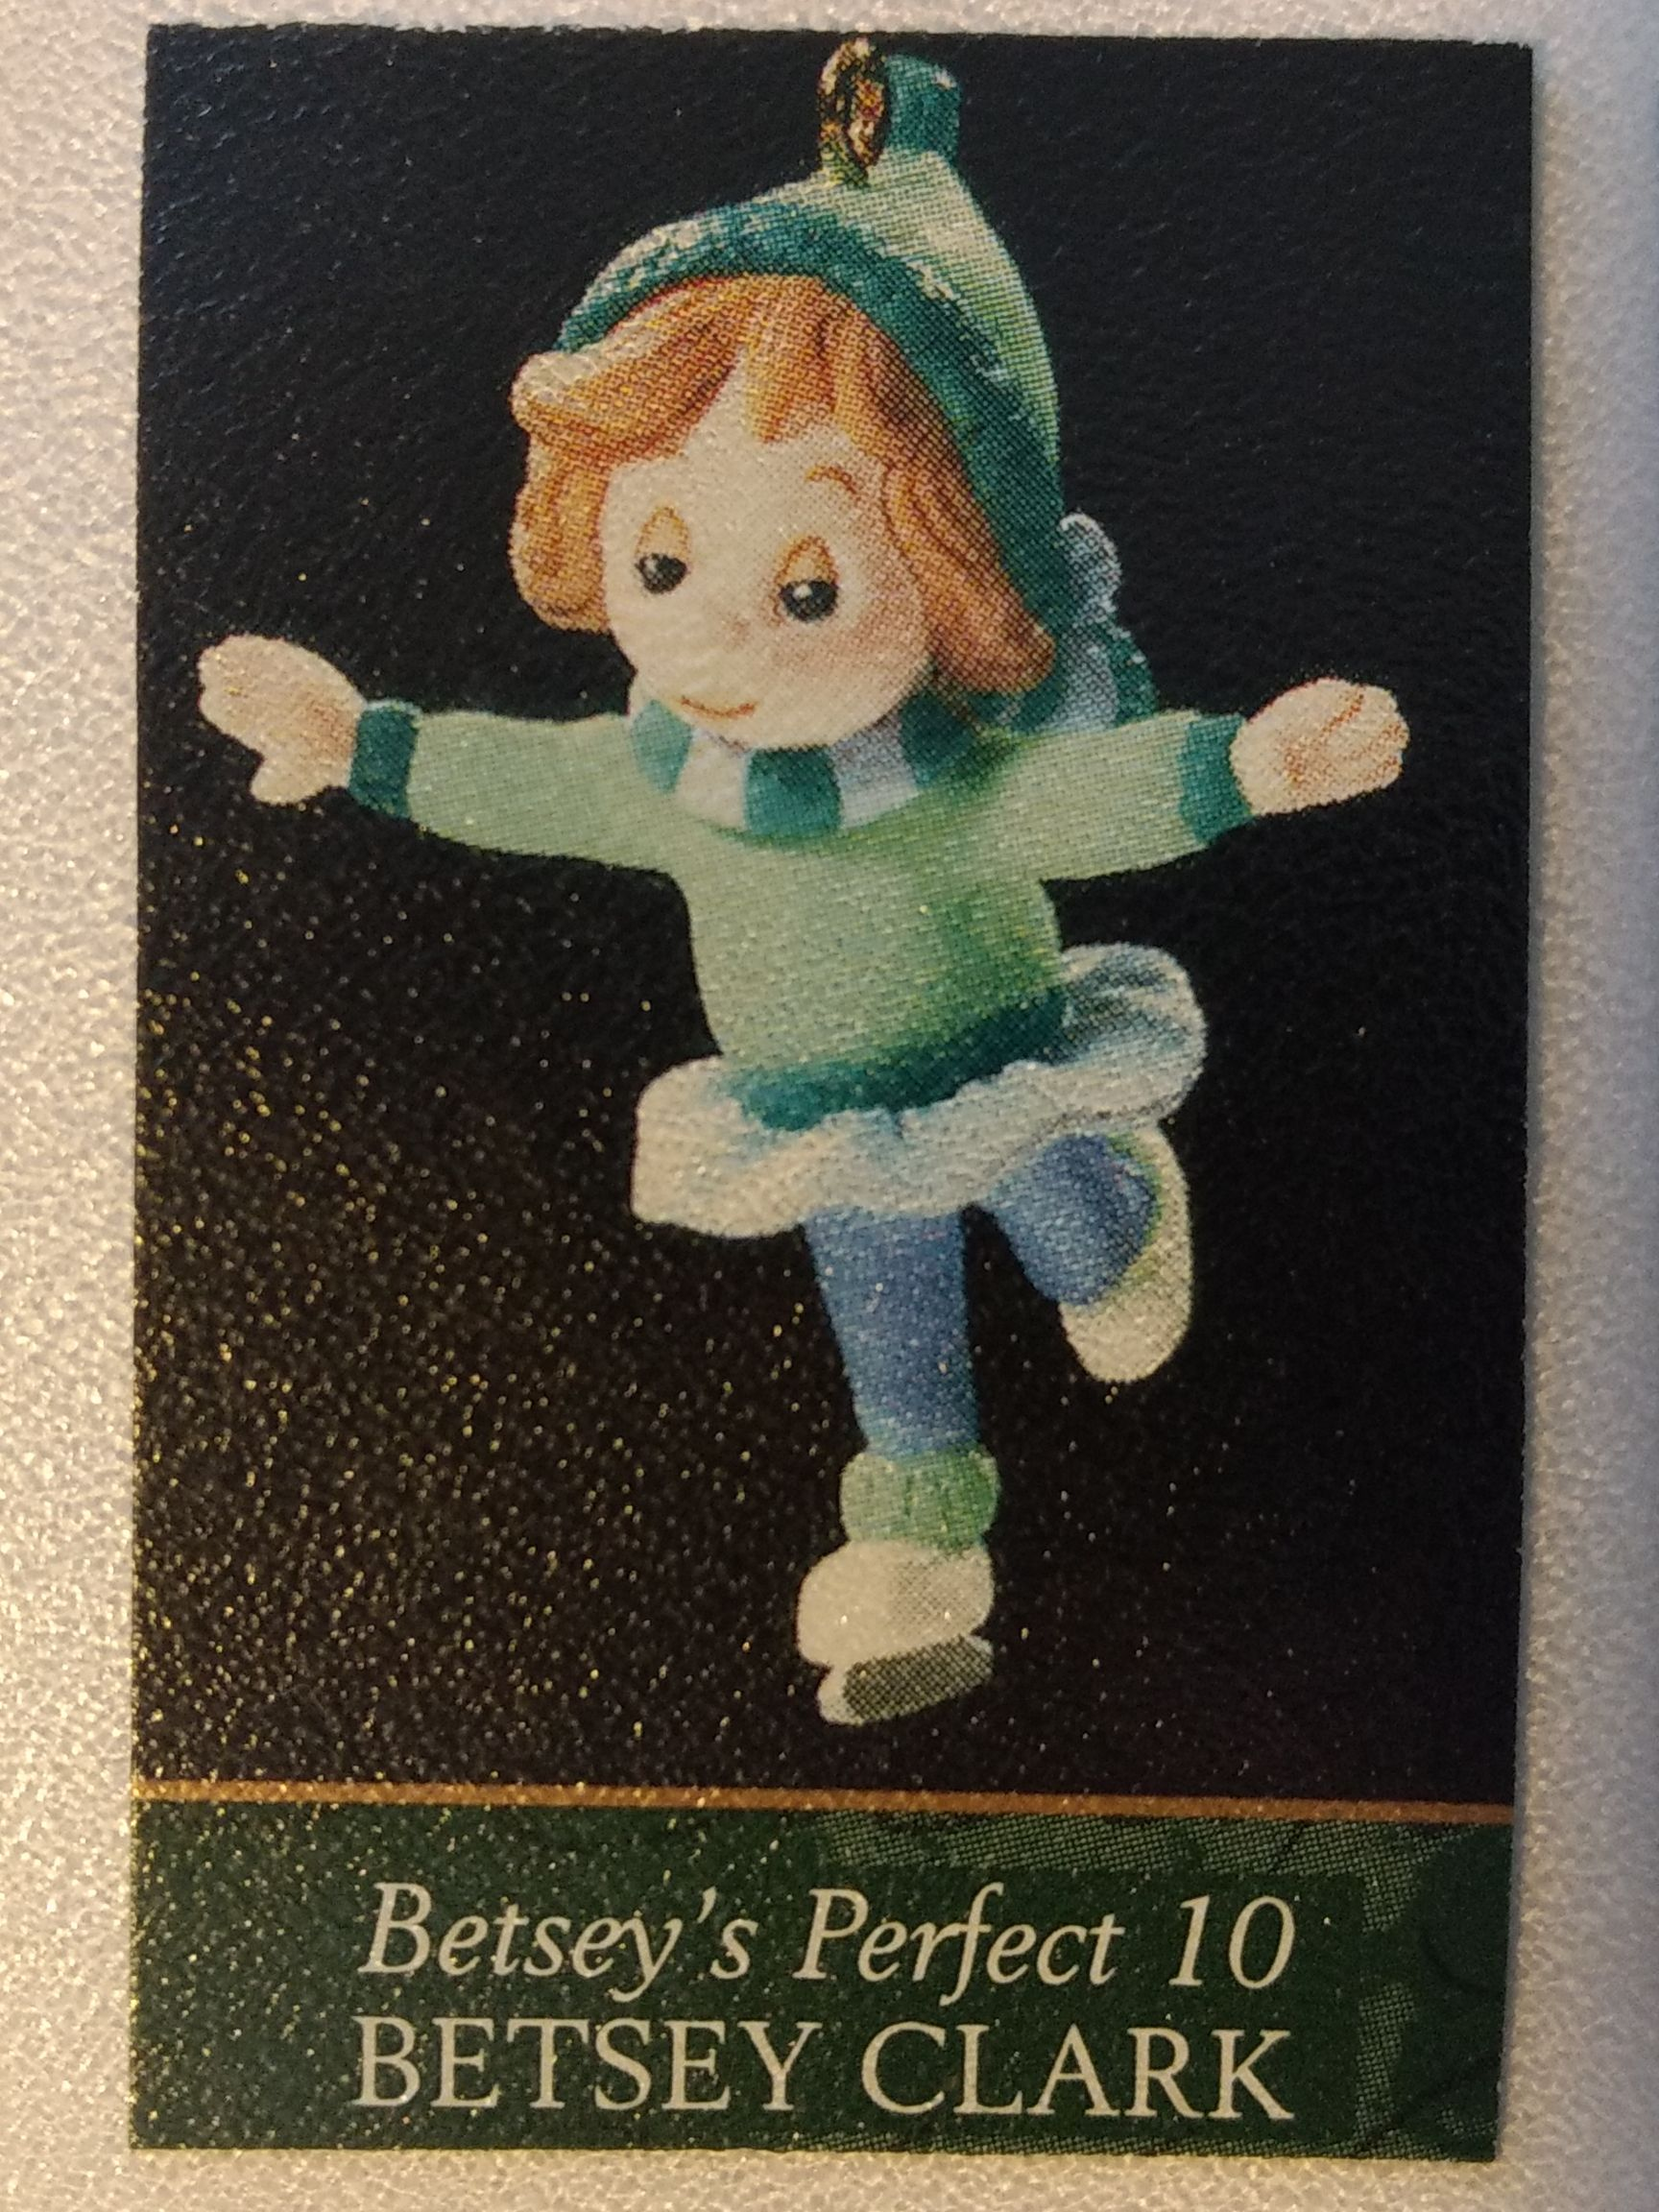 Z - Betsey Clark Ornament - Hallmark front image (front cover)